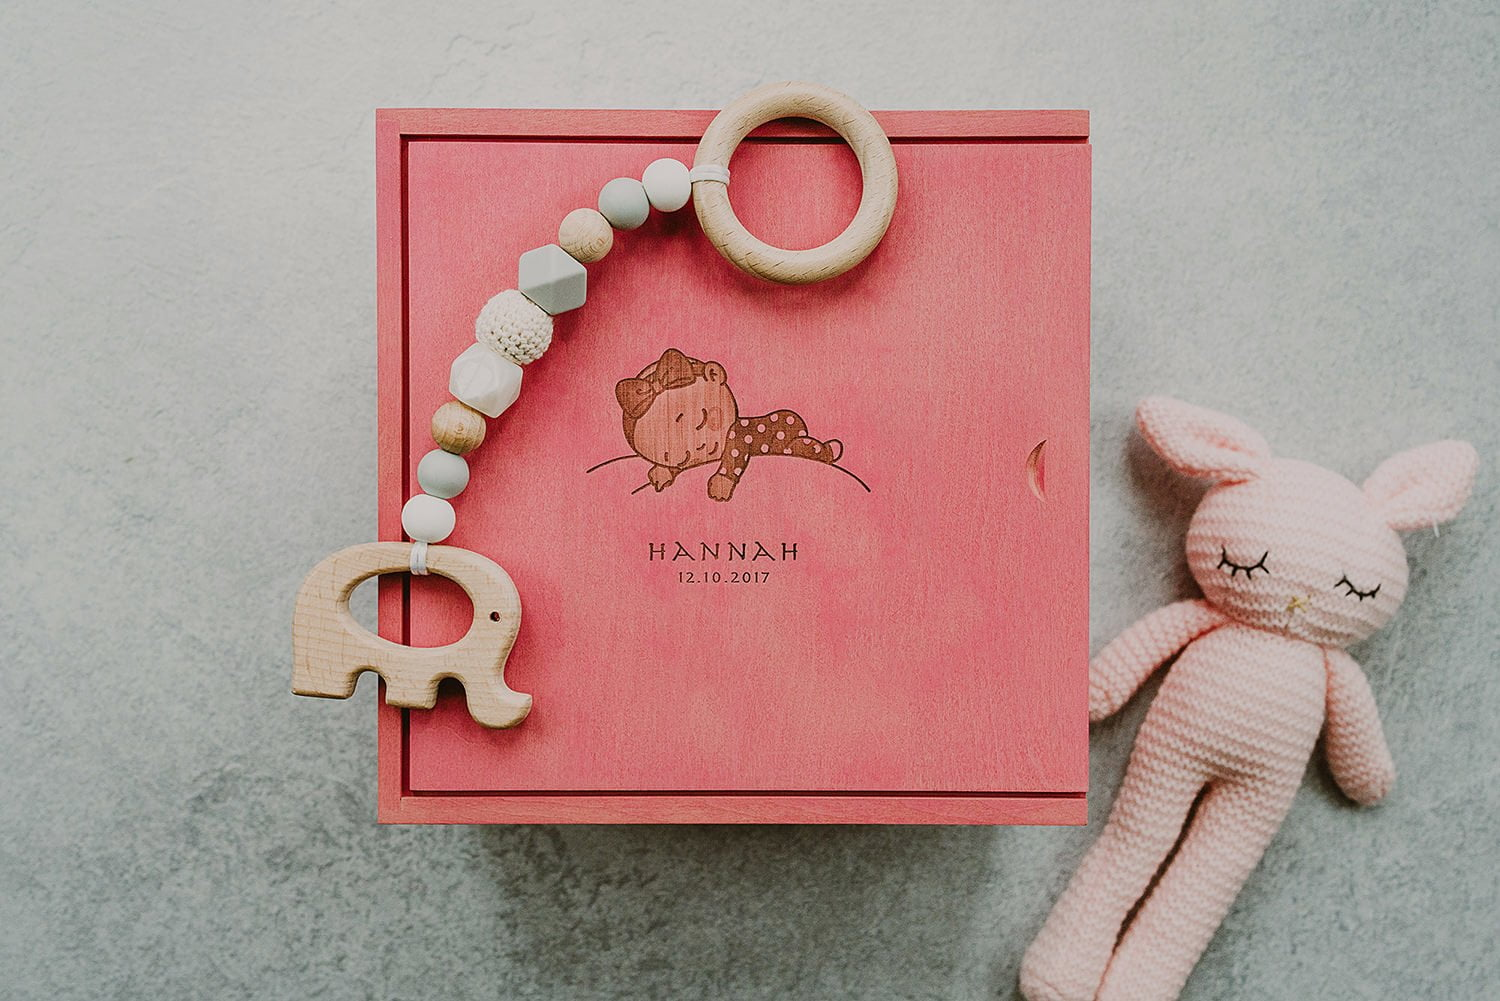 keepsake box for a newborn girl